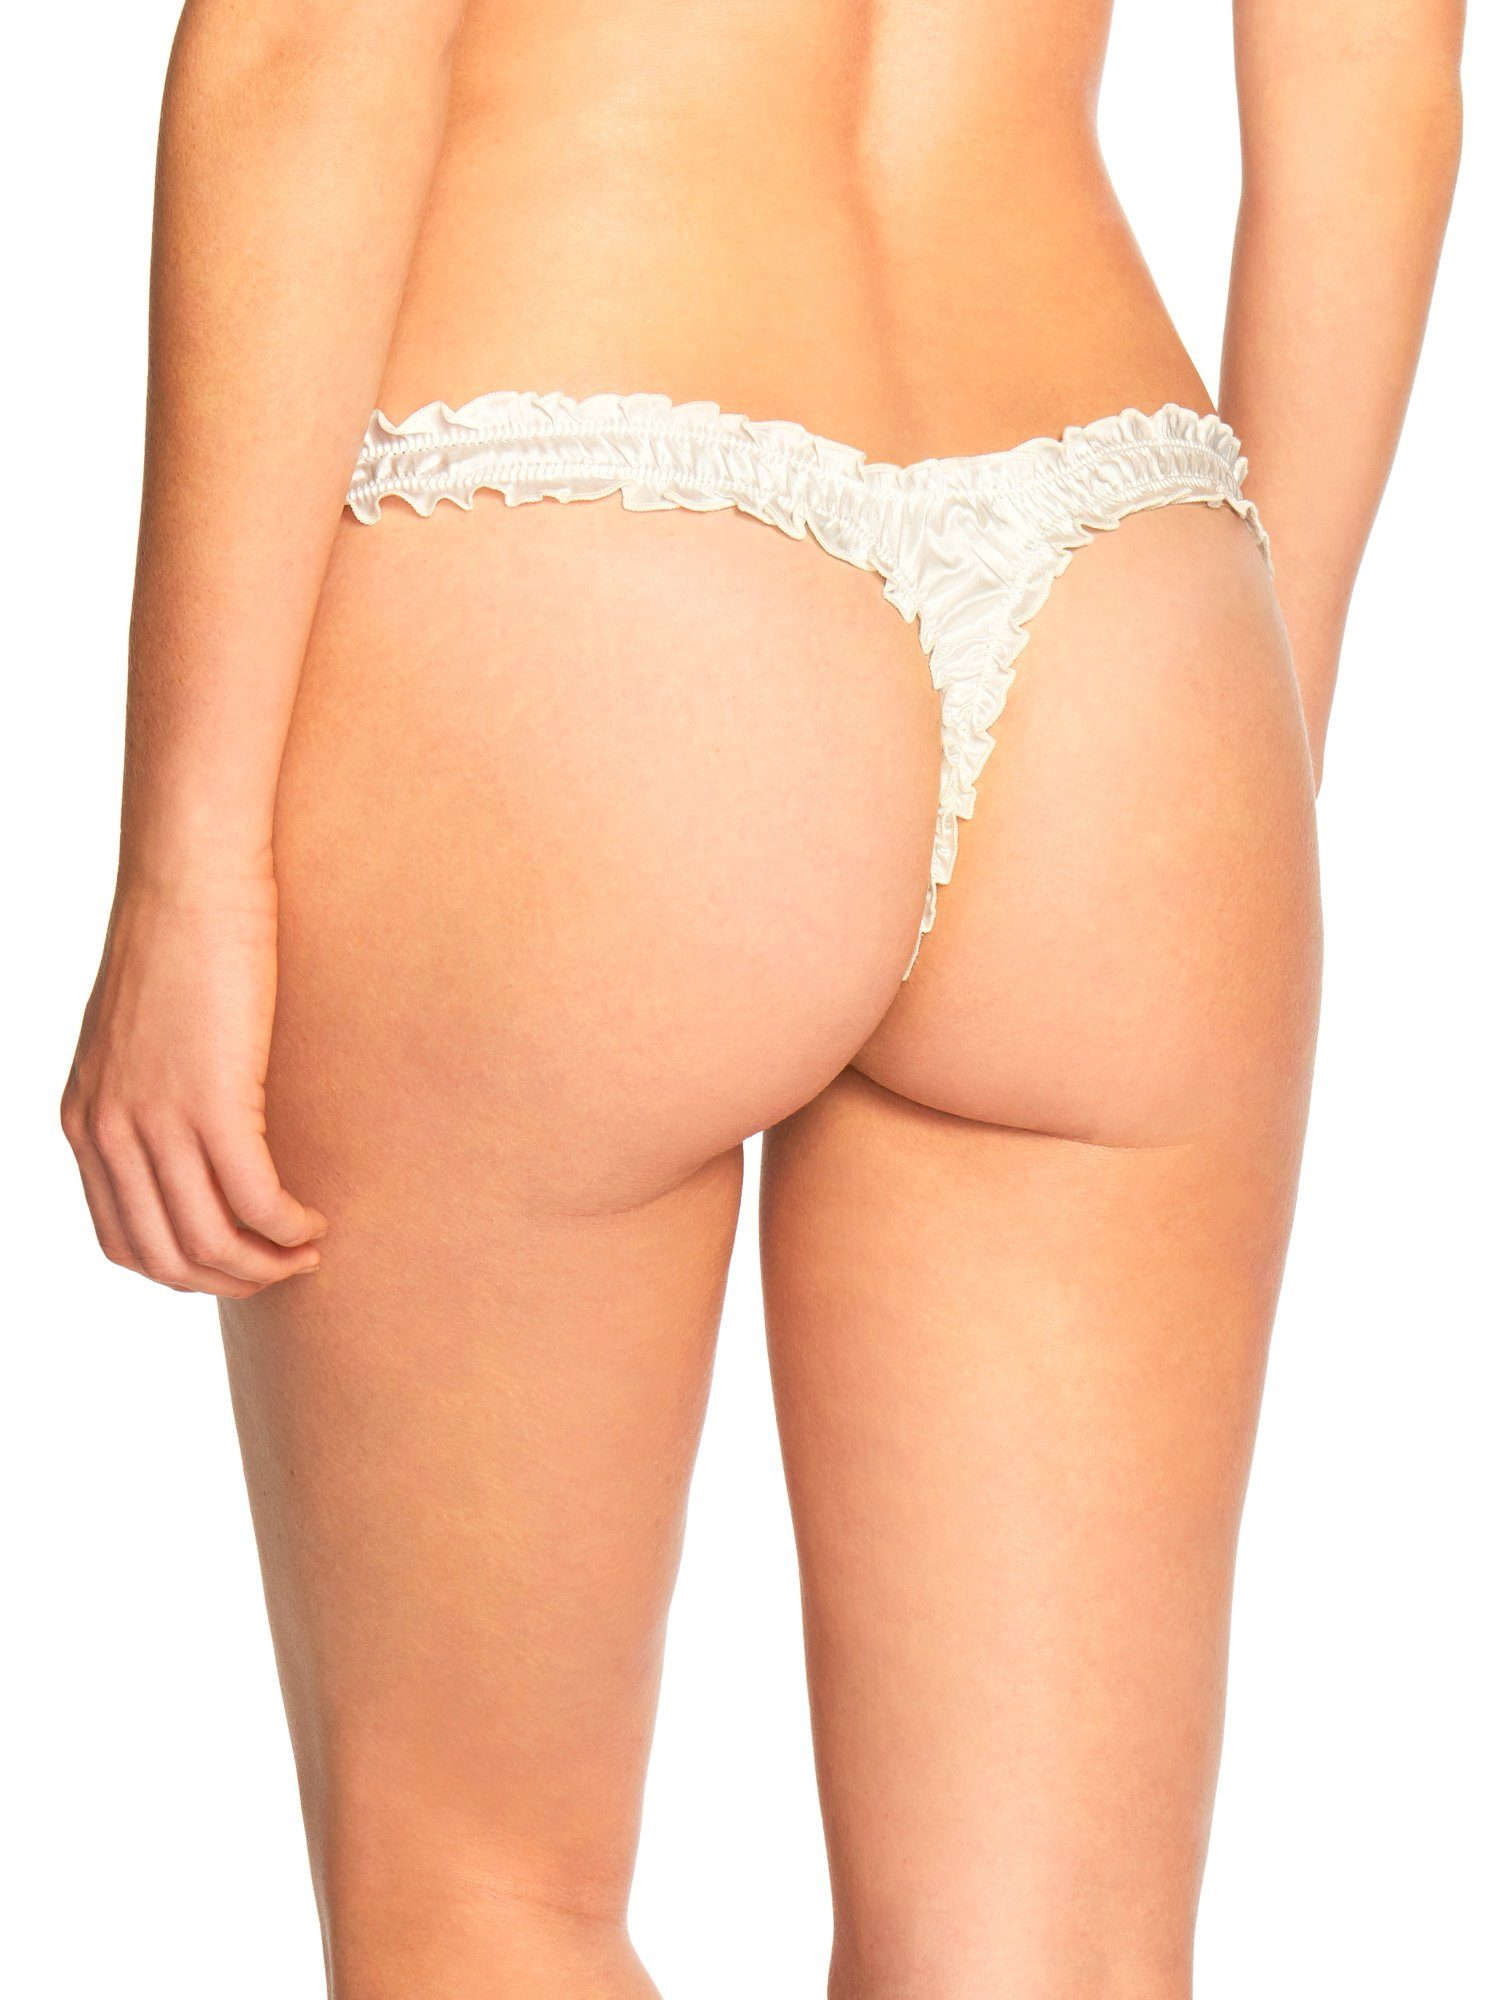 Bridal Thong - Mrs. Embroidery Bras & Panties by Le Marché by NP